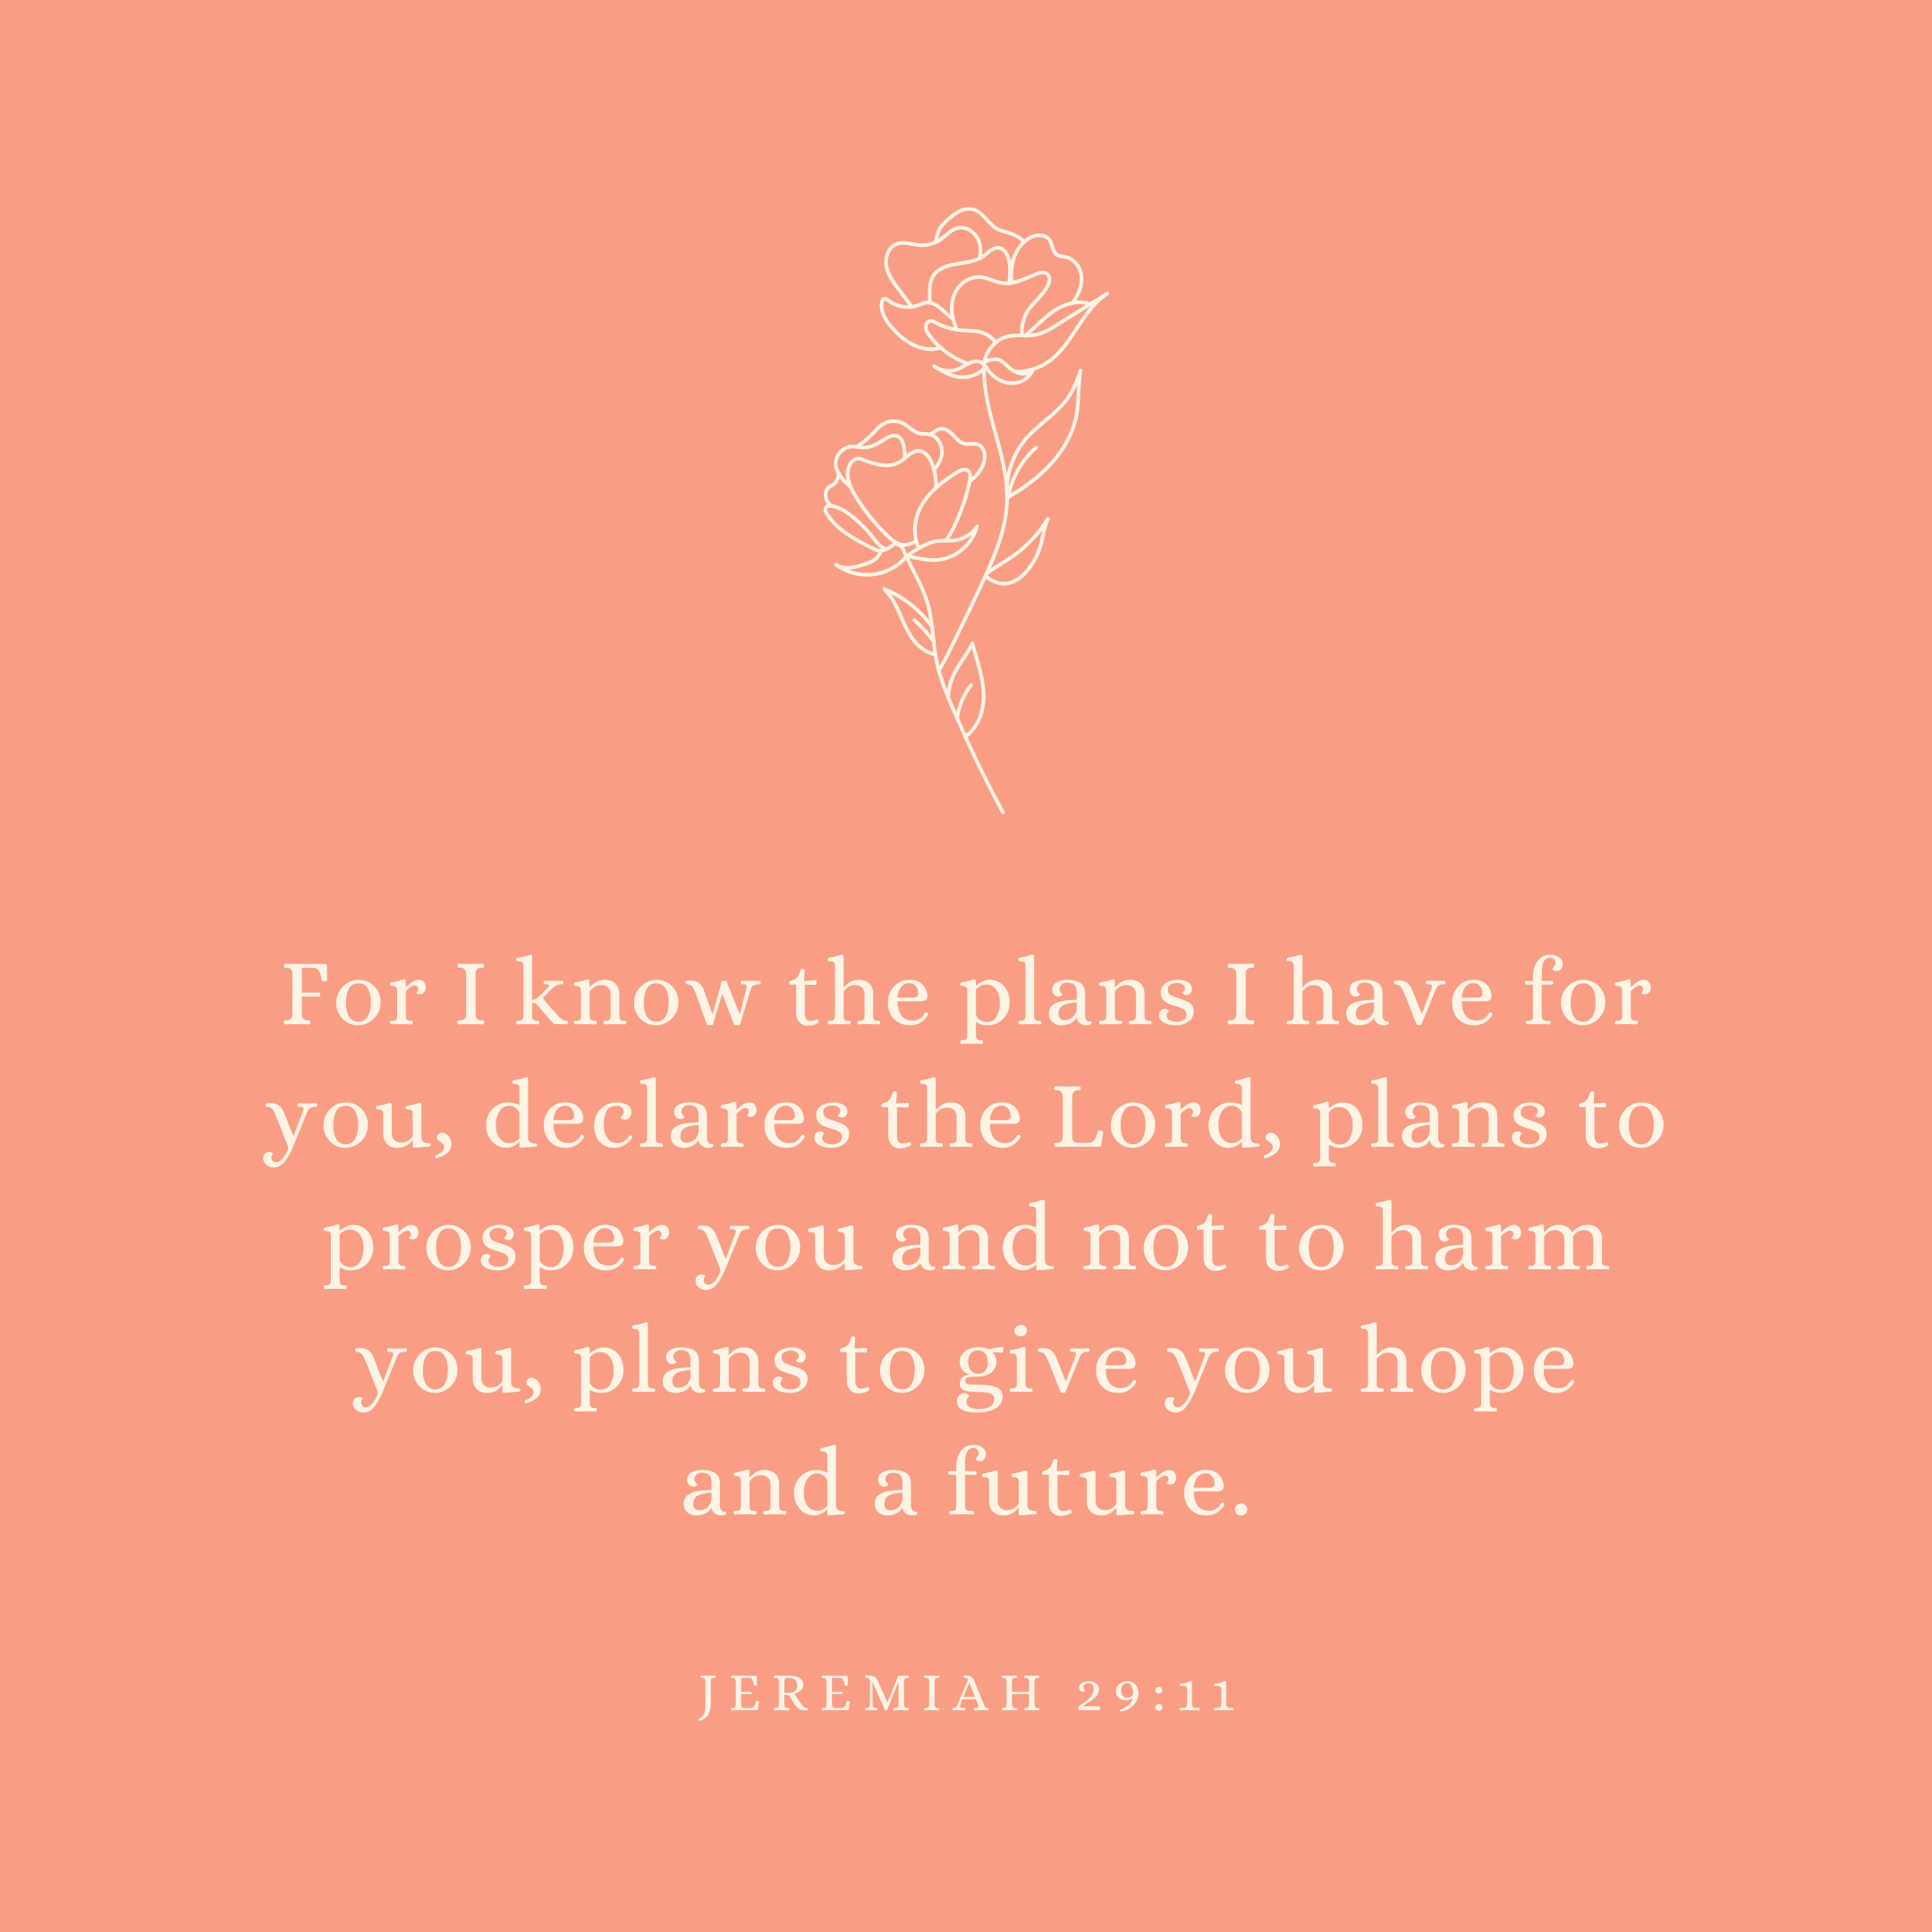 Jeremiah 29:11 For I know the plans I have for you, declares the Lord, plans to prosper you and not to harm you, plans to give you hope and a future.